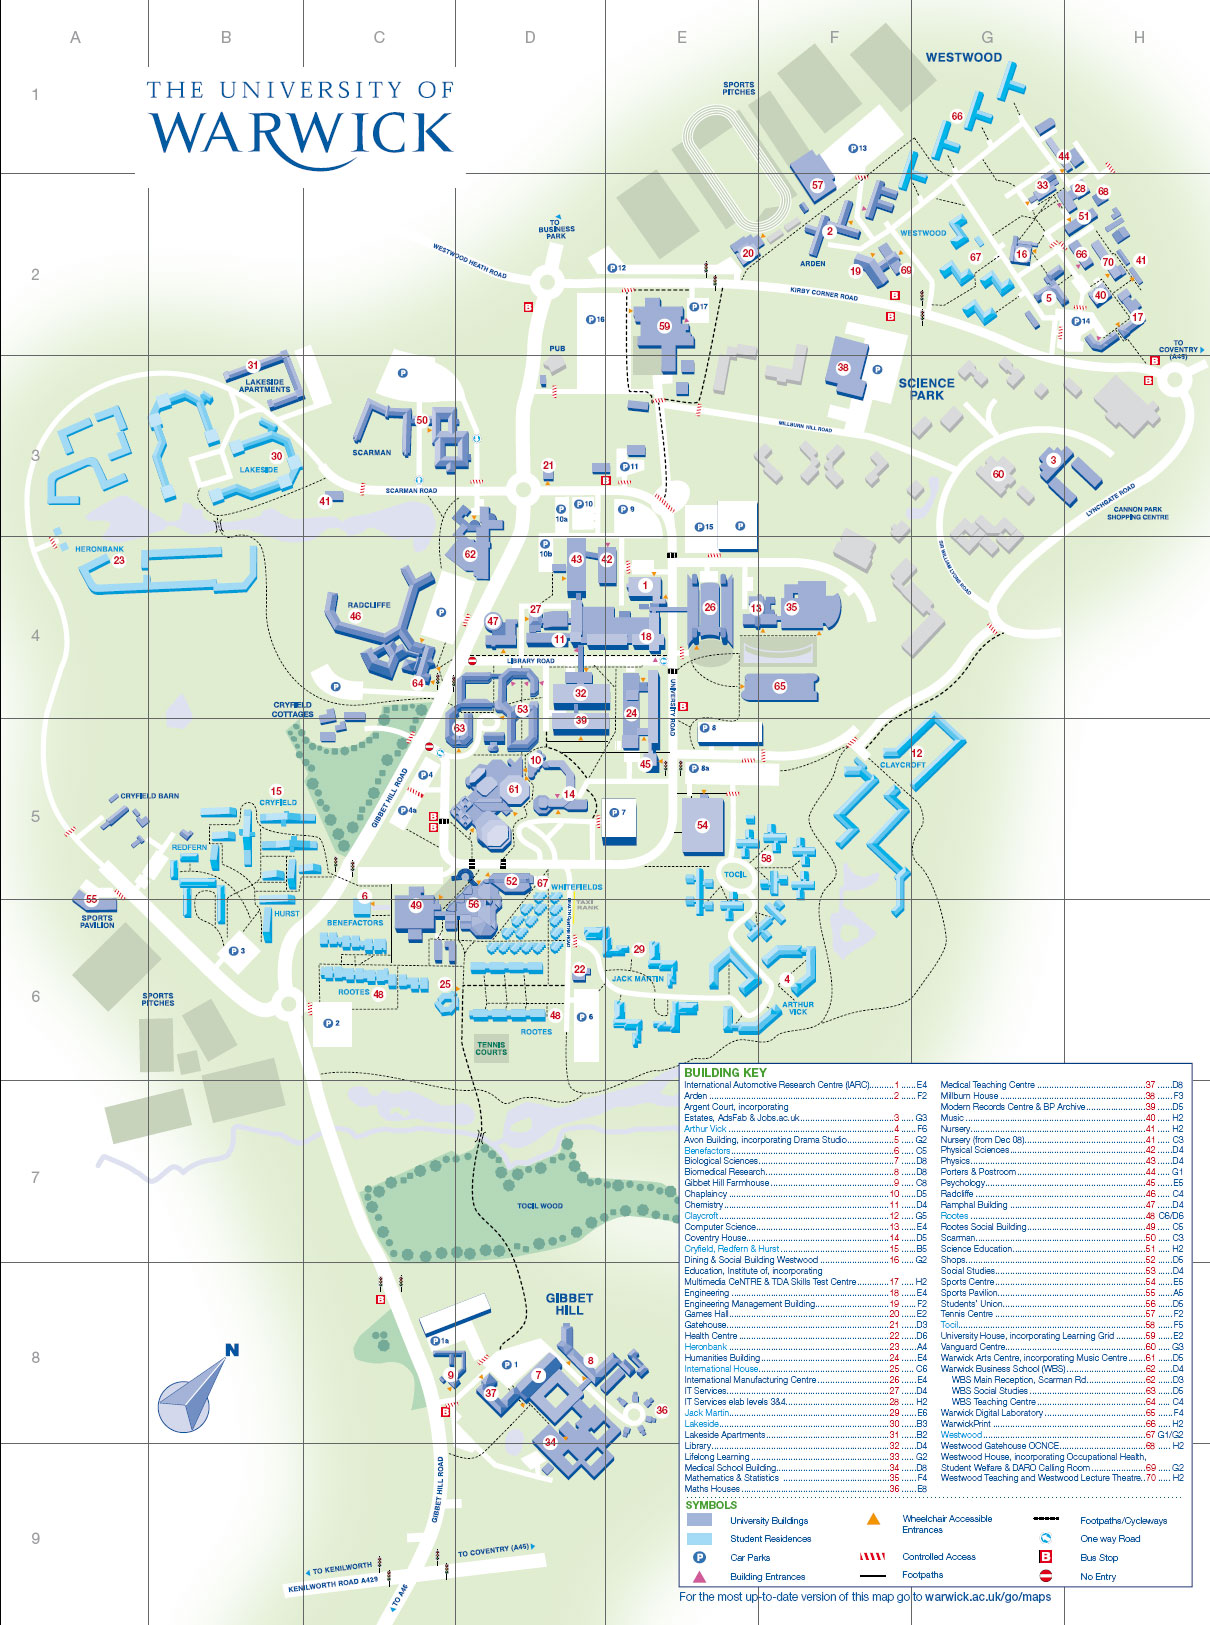 University of Warwick Campus Map Coventry mappery